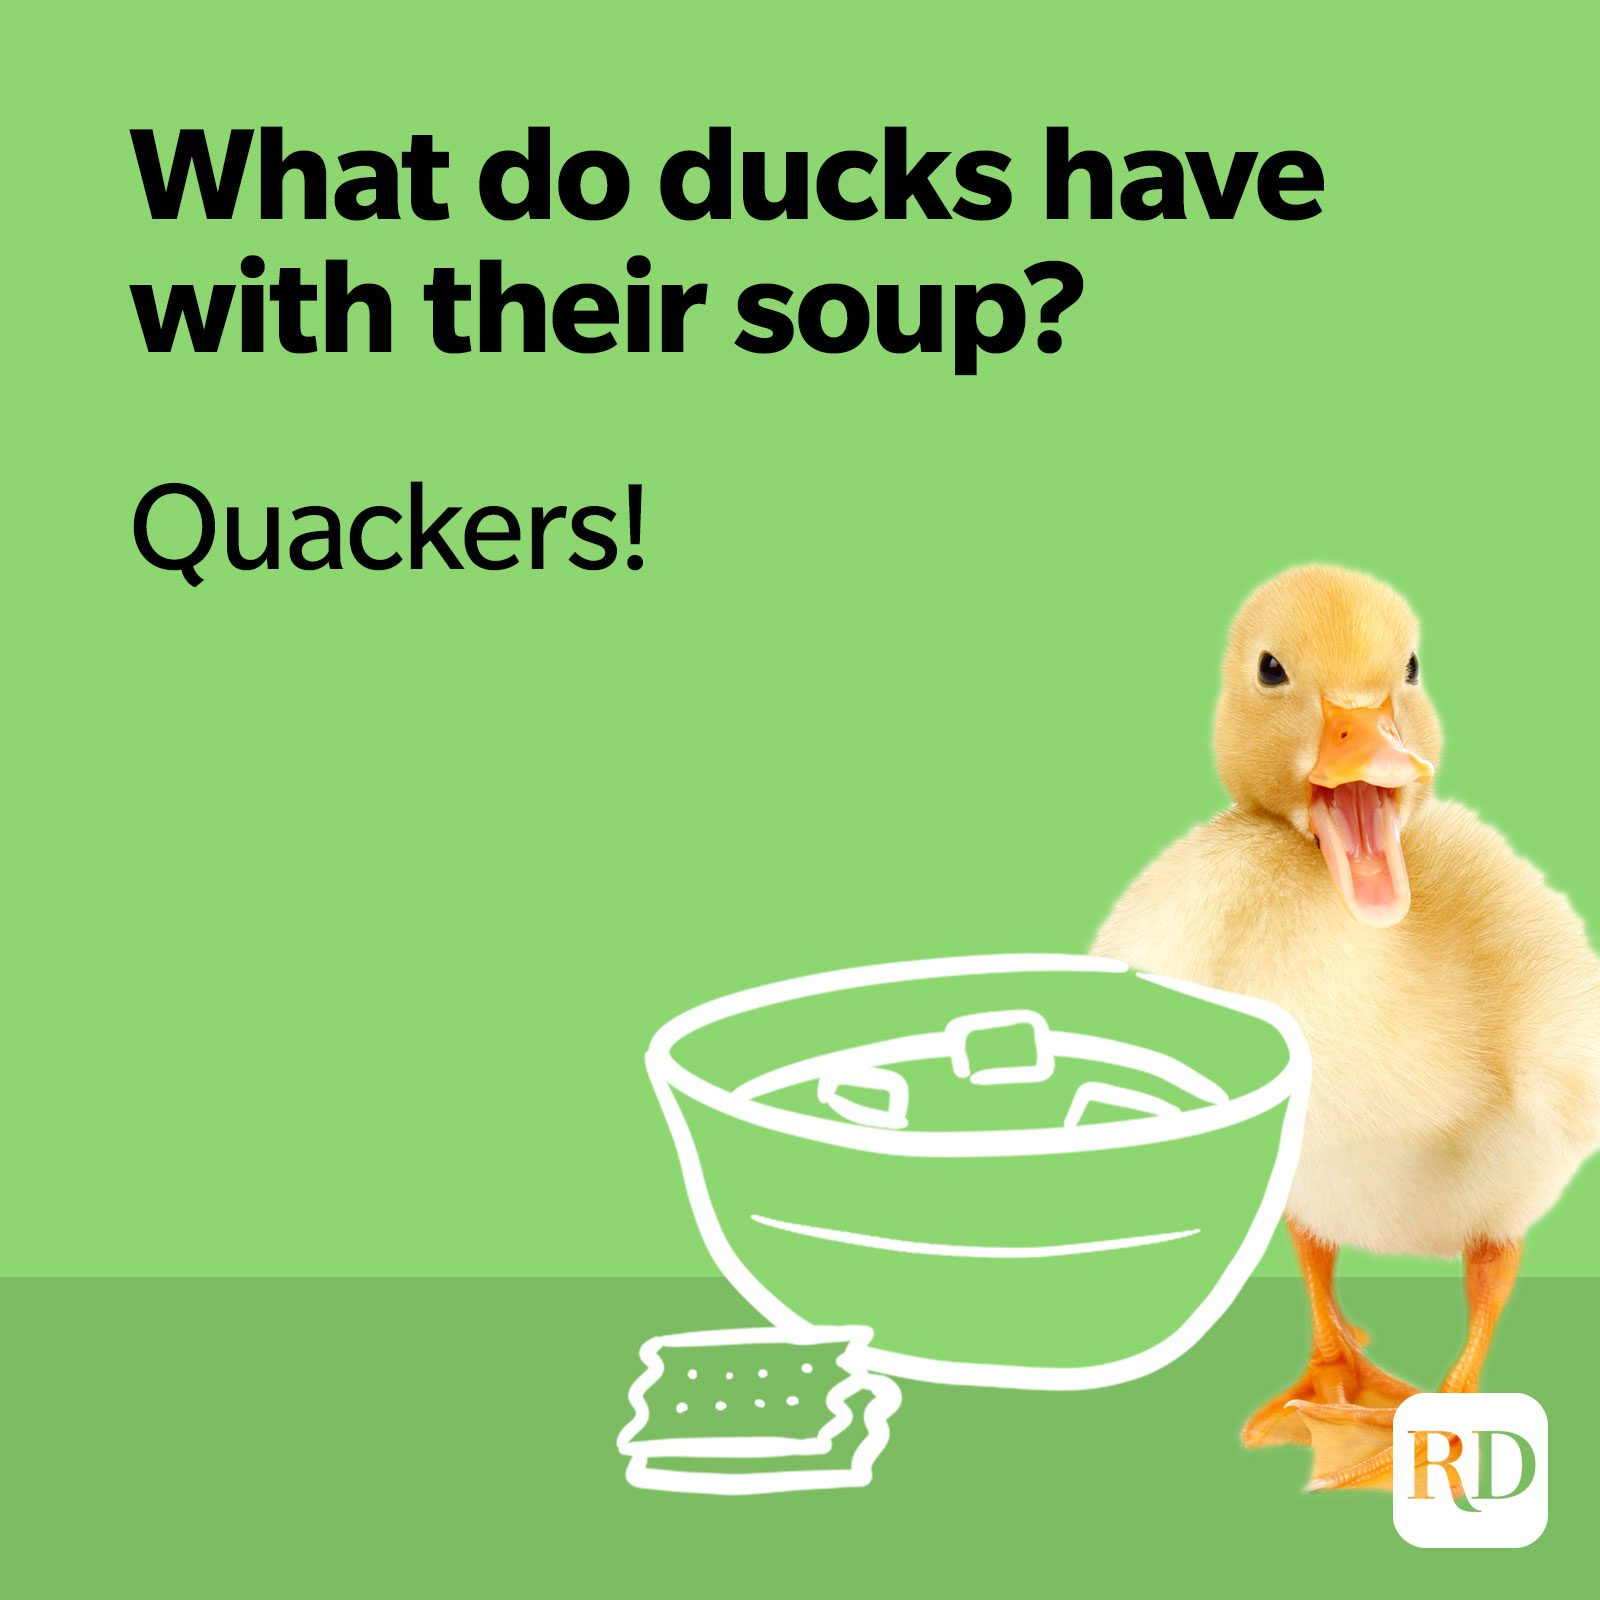 20. What do ducks have with their soup? Quackers!